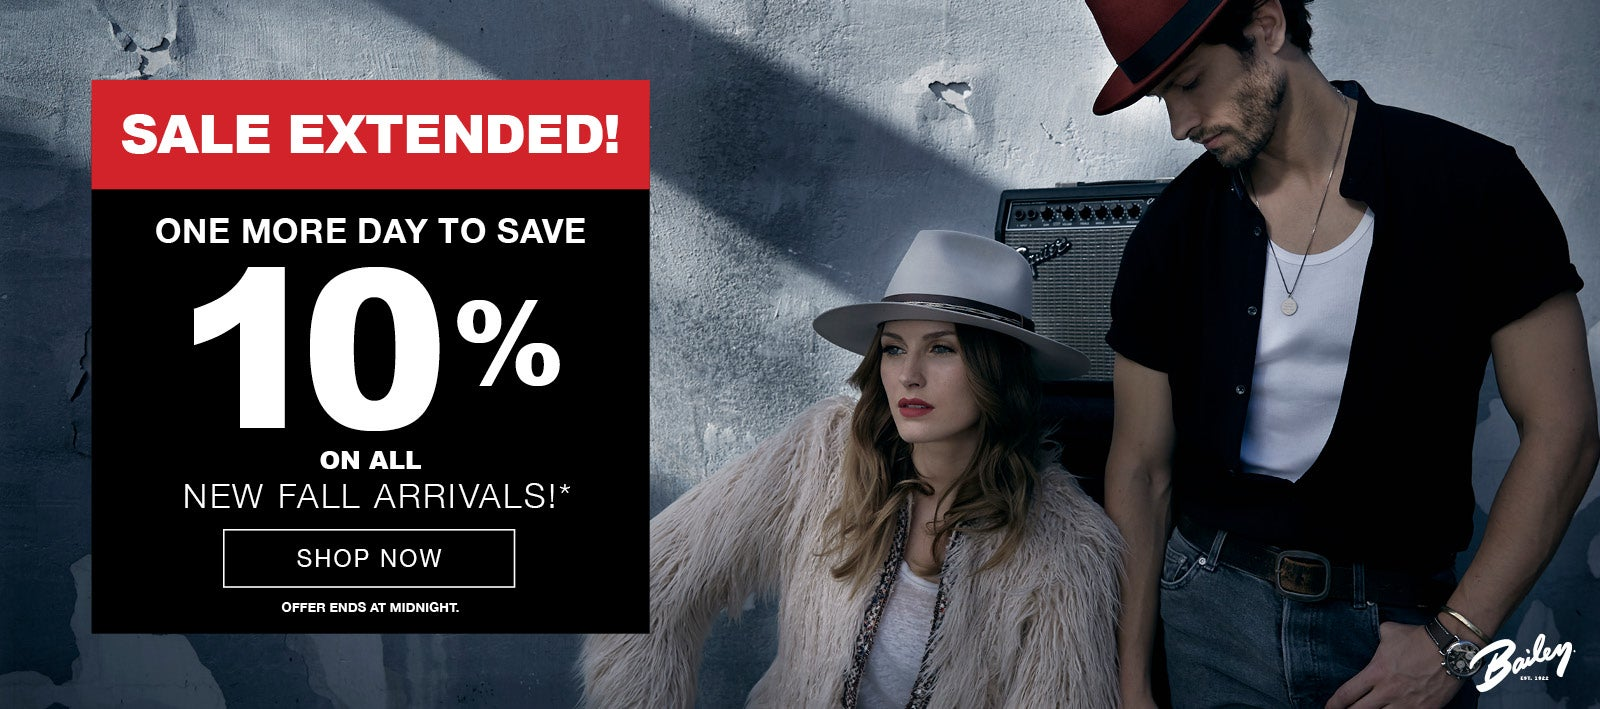 New Fall Arrivals Sale Extended